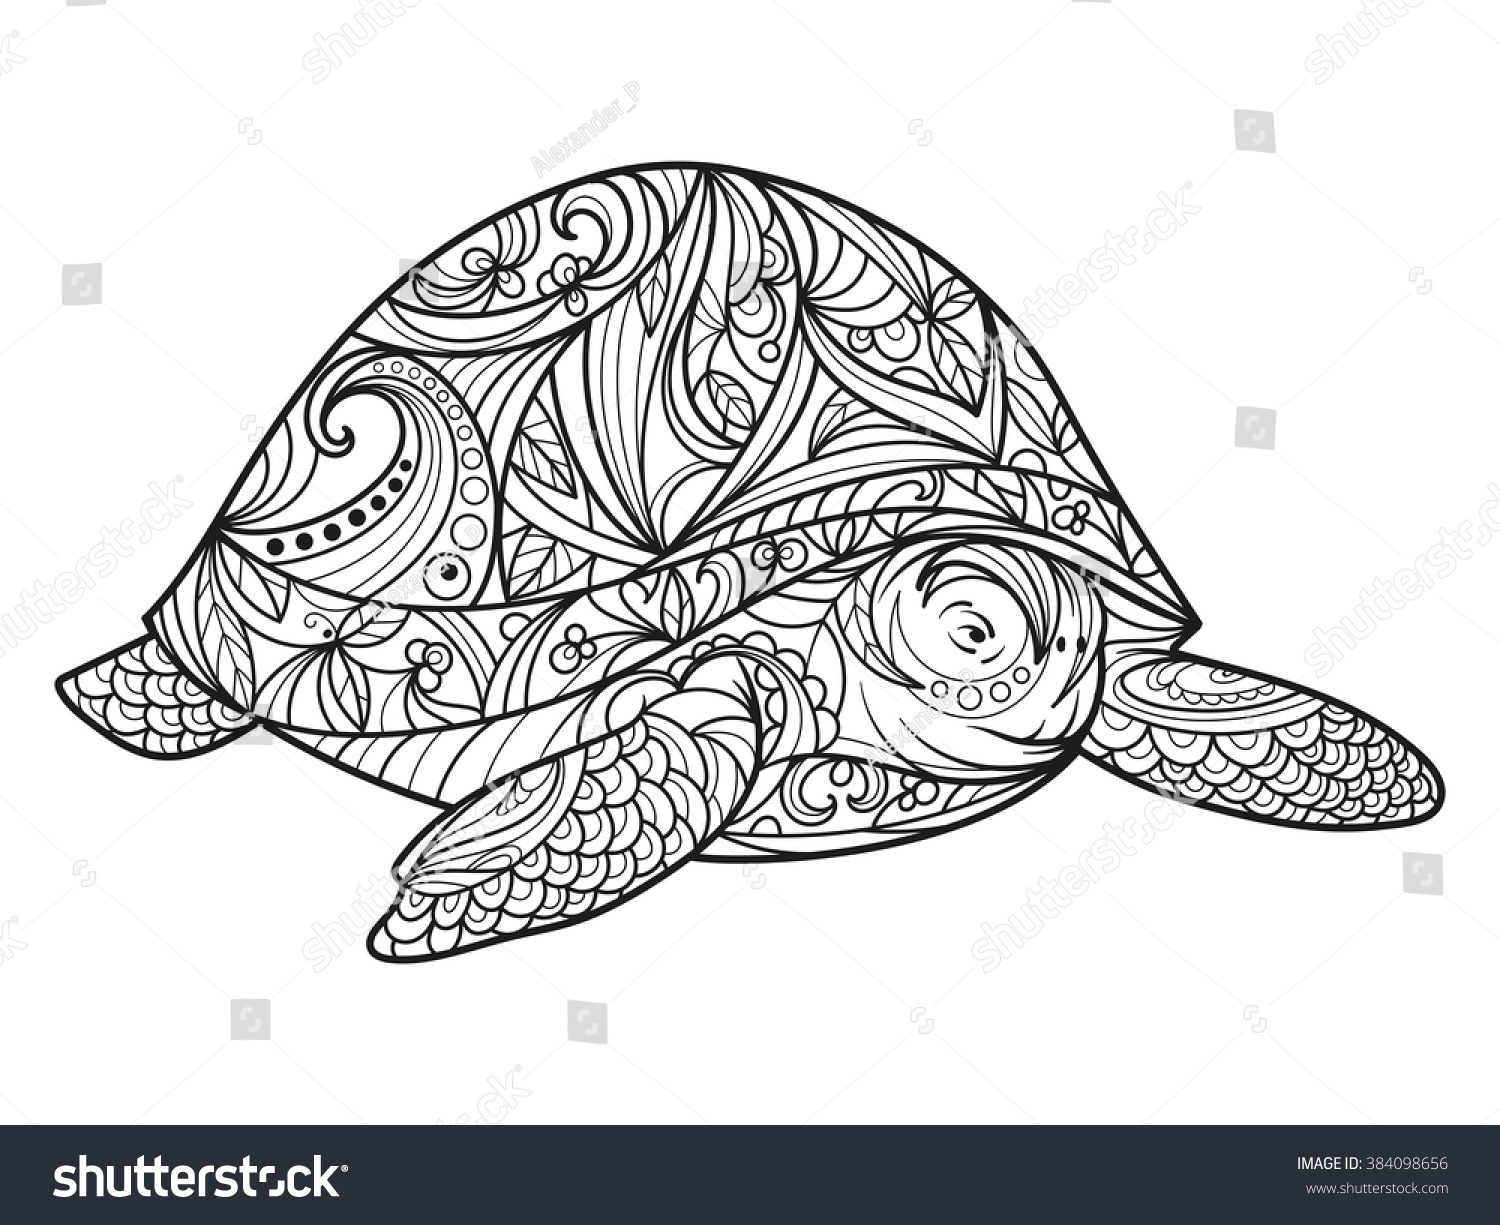 Turtle Coloring Book Adults Vector Illustration Stock Vector ...